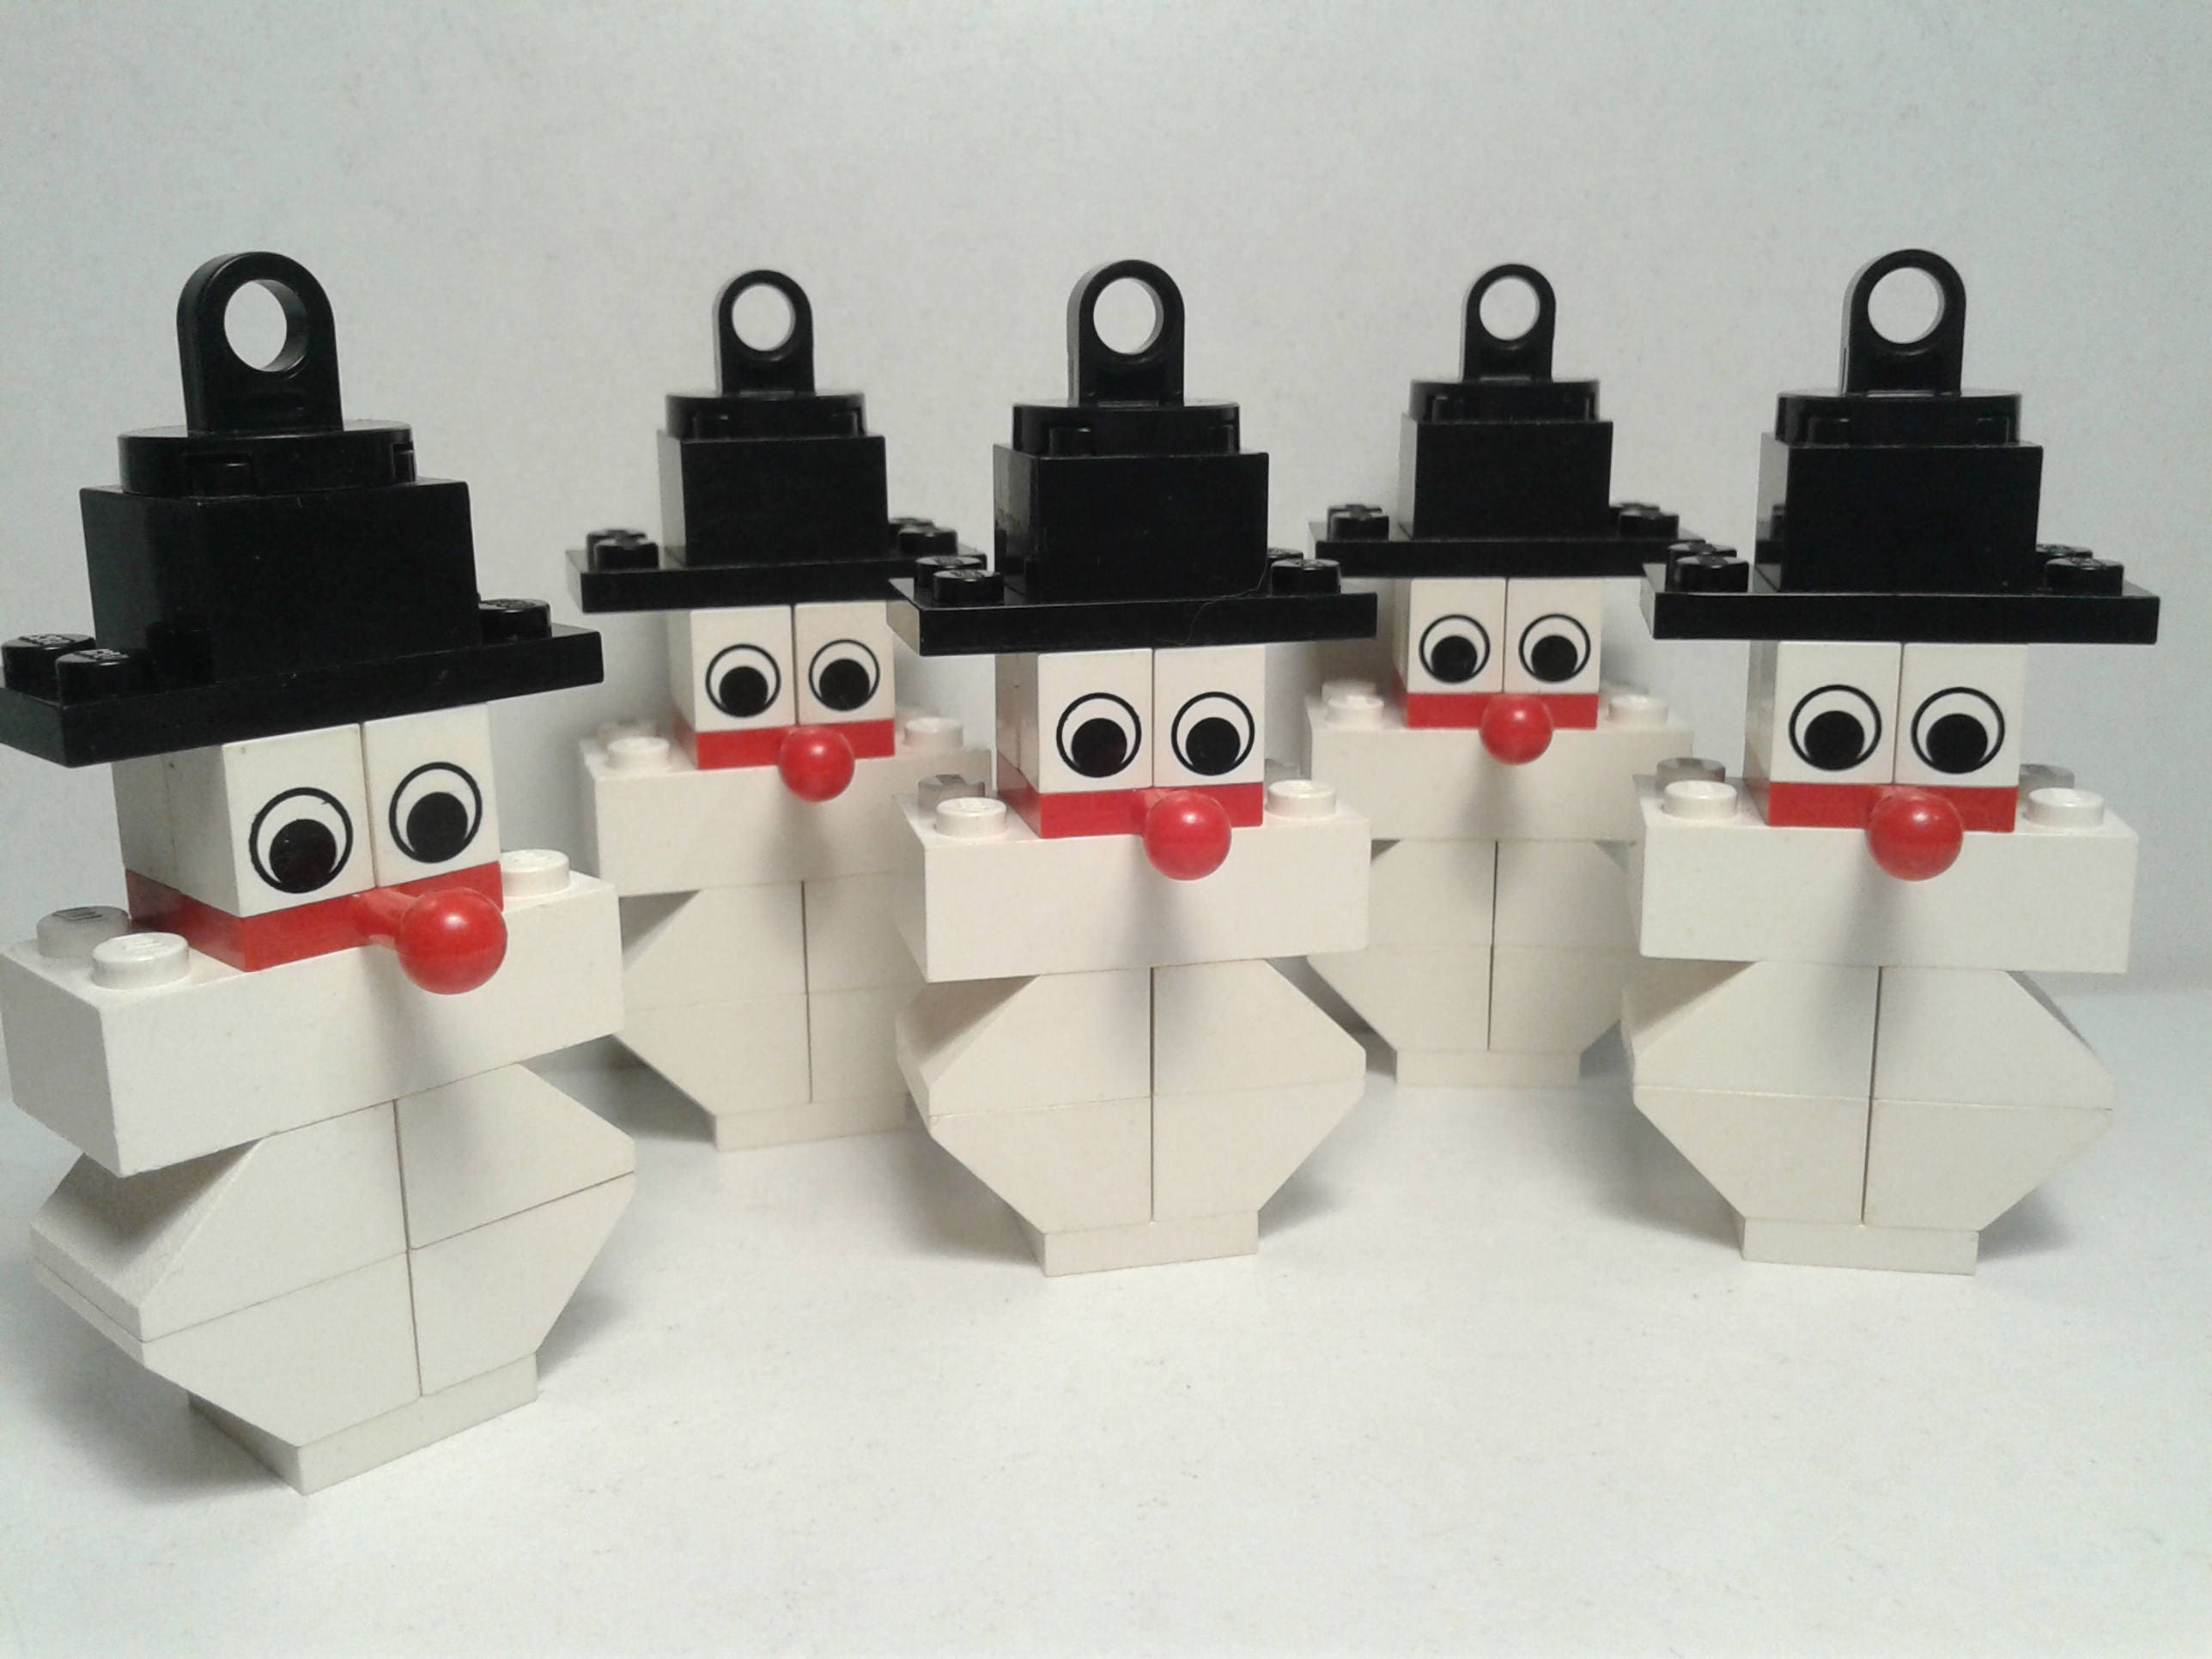 Lego Christmas Ornaments Snowman Christmas Decorations Ornaments For Christmas Tree